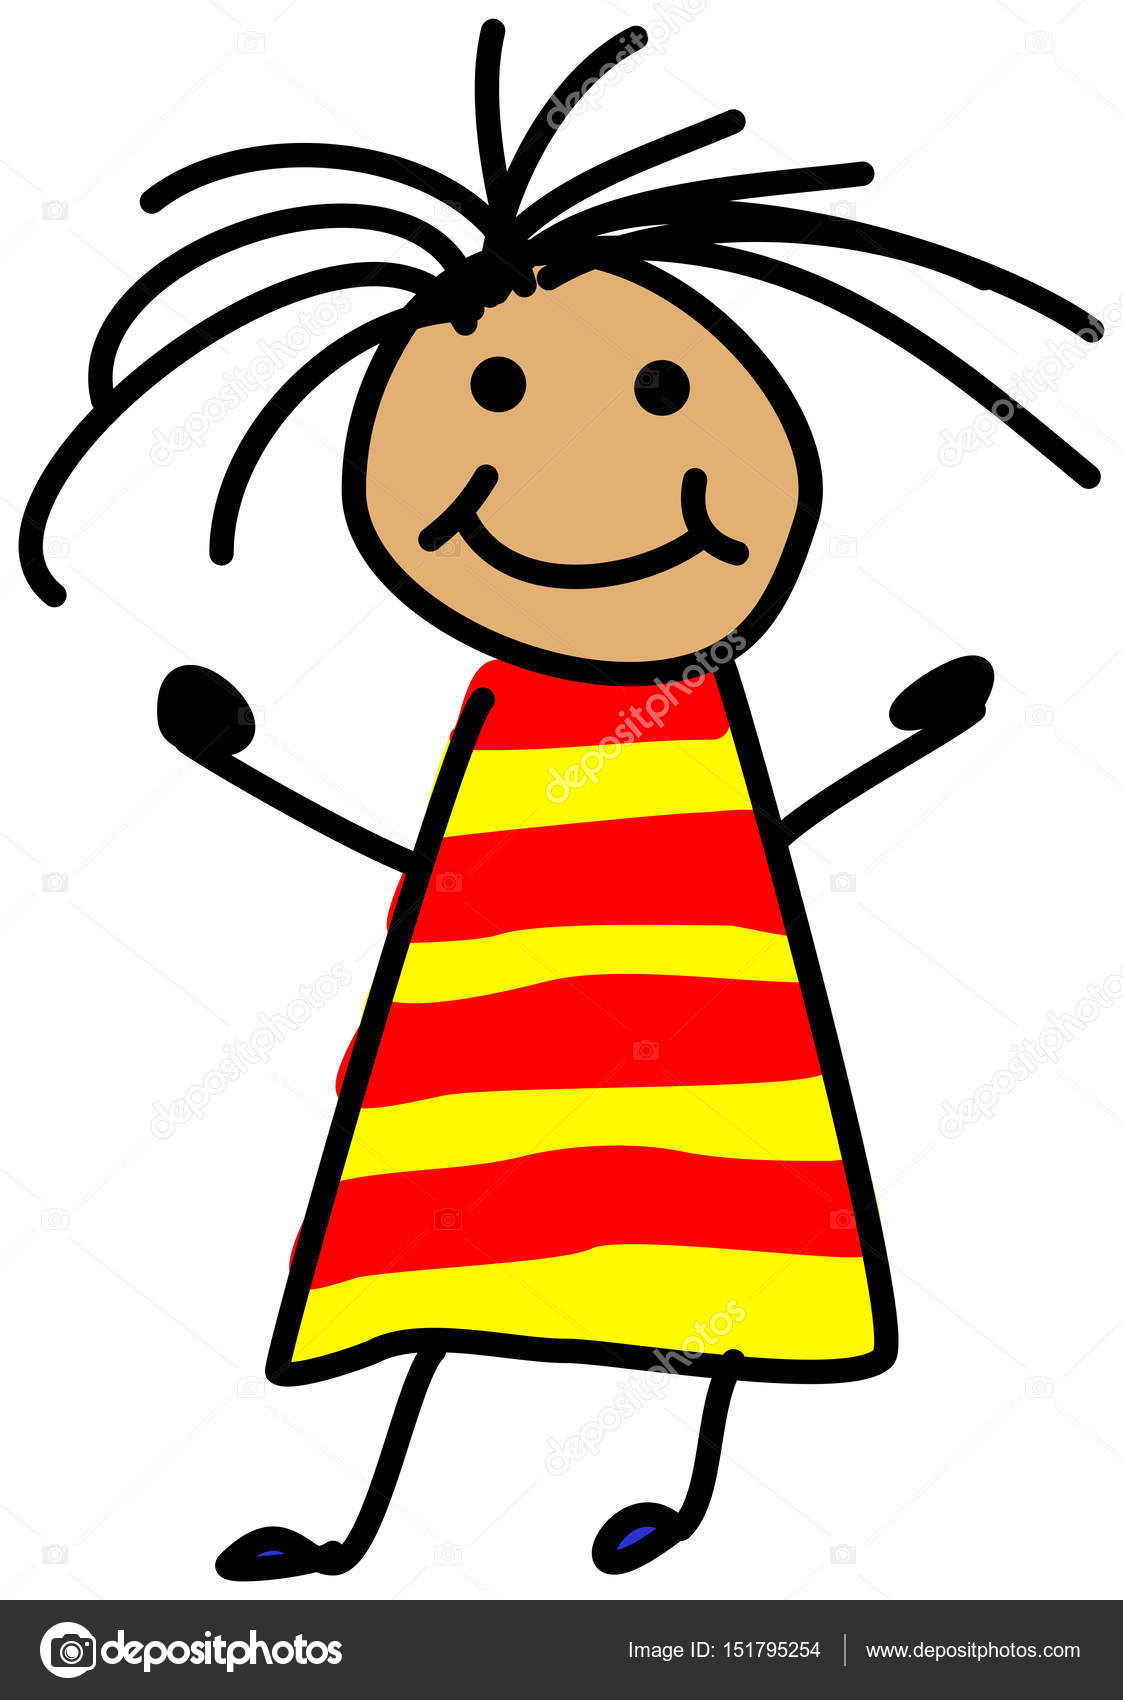 1123x1700 Simple child stickman illustration drawing of girl with wild hai